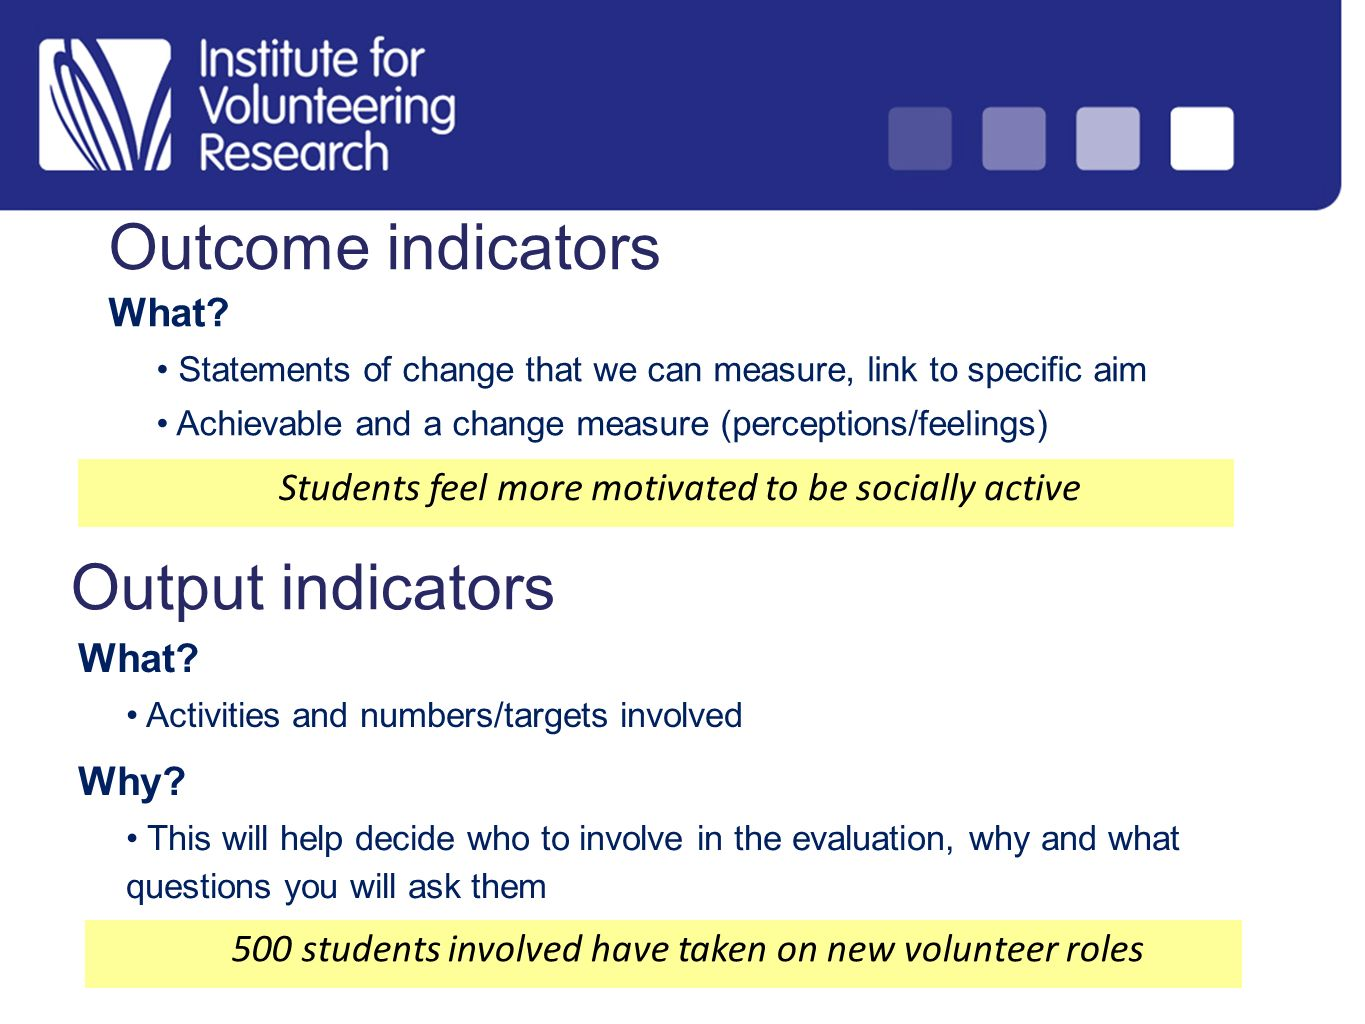 Outcome indicators What? Statements of change that we can measure, link to specific aim Achievable and a change measure (perceptions/feelings) Why? Th